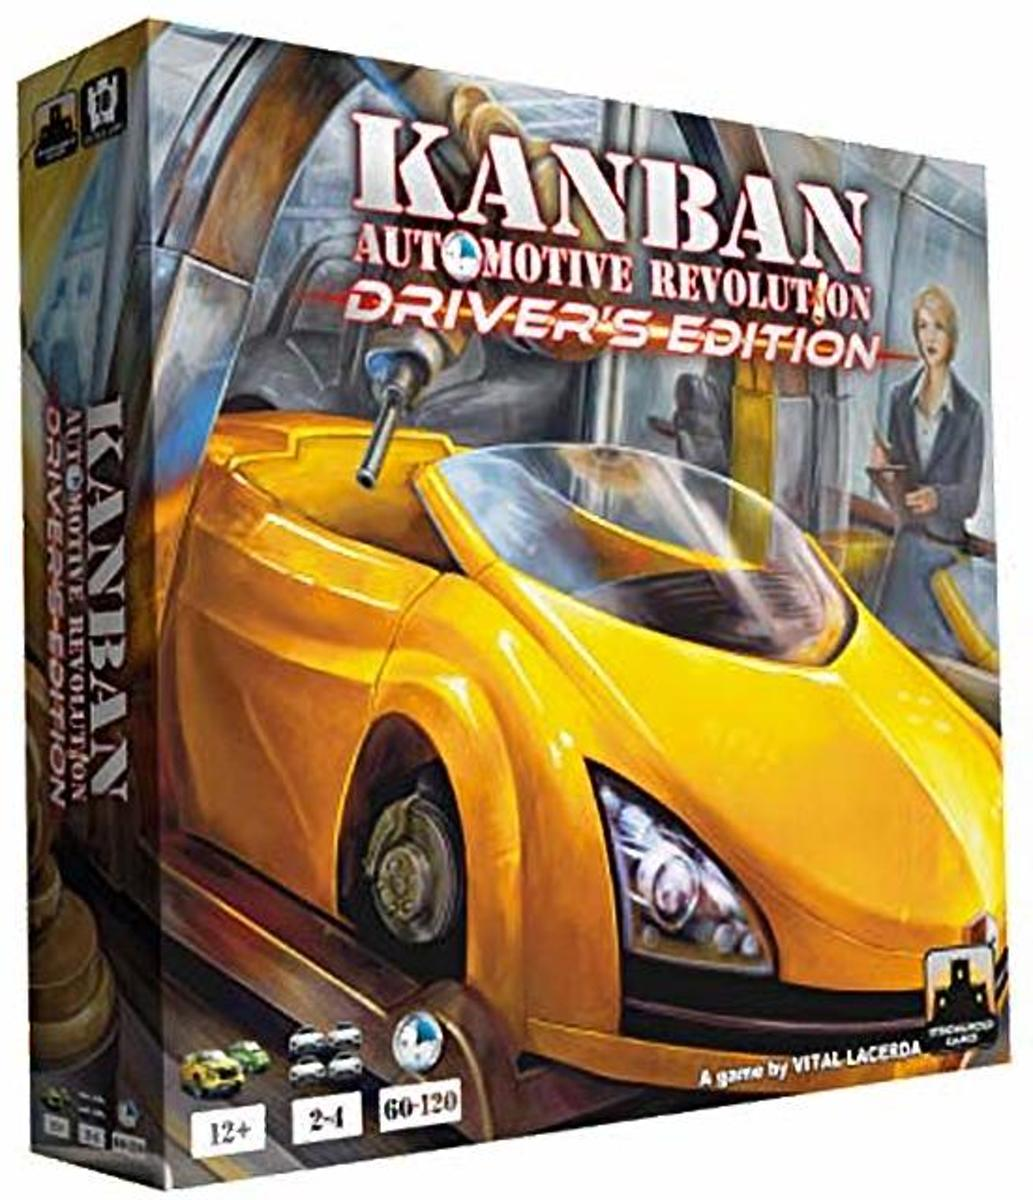 Kanban Automotive Revolution Drivers Edition